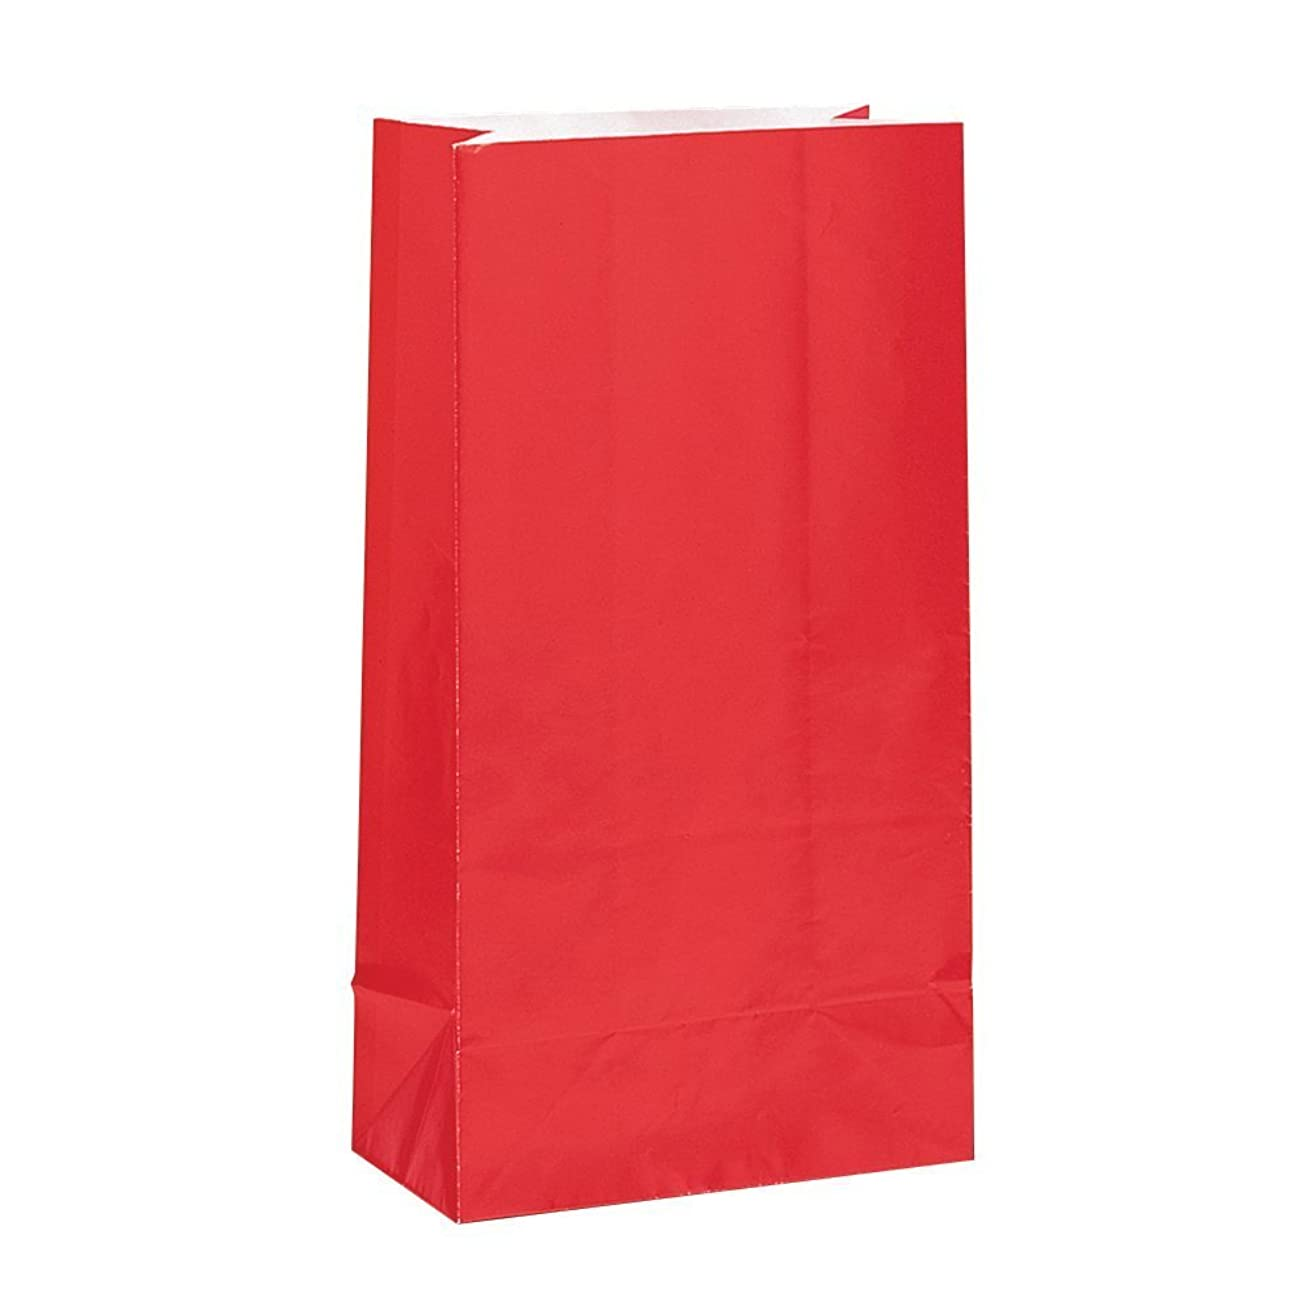 Red Paper Party Favor Bags, 12ct (3 pack)